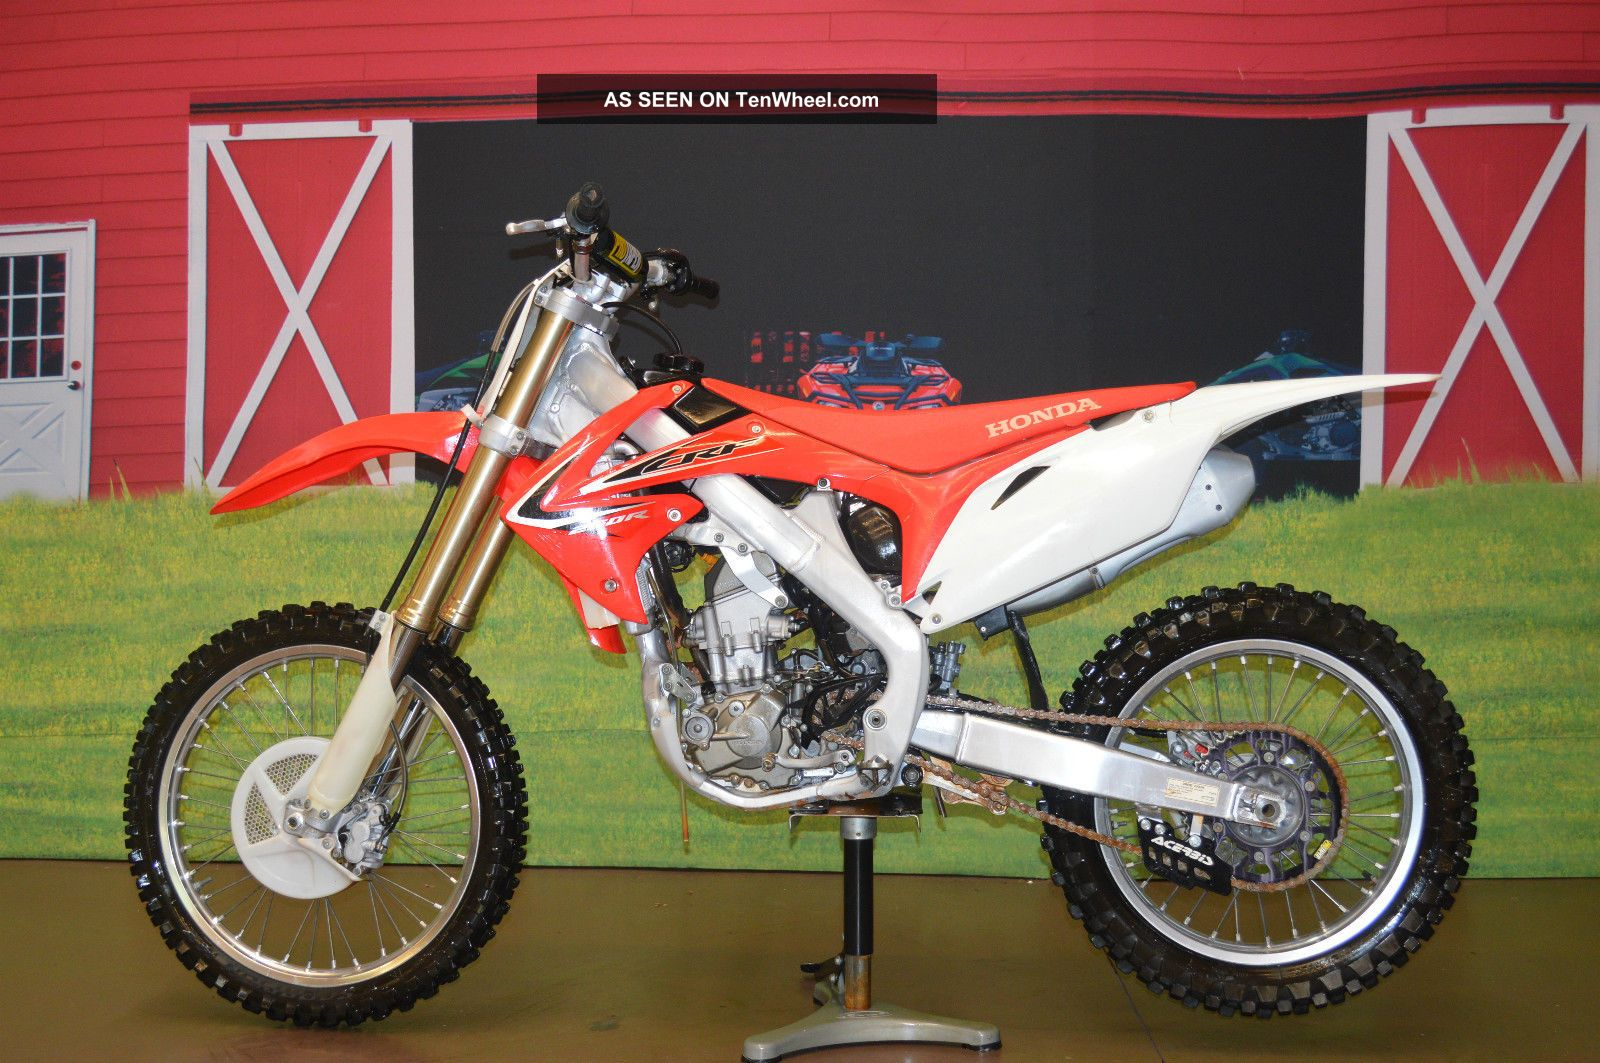 Make Offer 2012 Honda Crf 250r,  Four Stroke,  Has Title,  Fuel Injected,  Pro Taper CRF photo